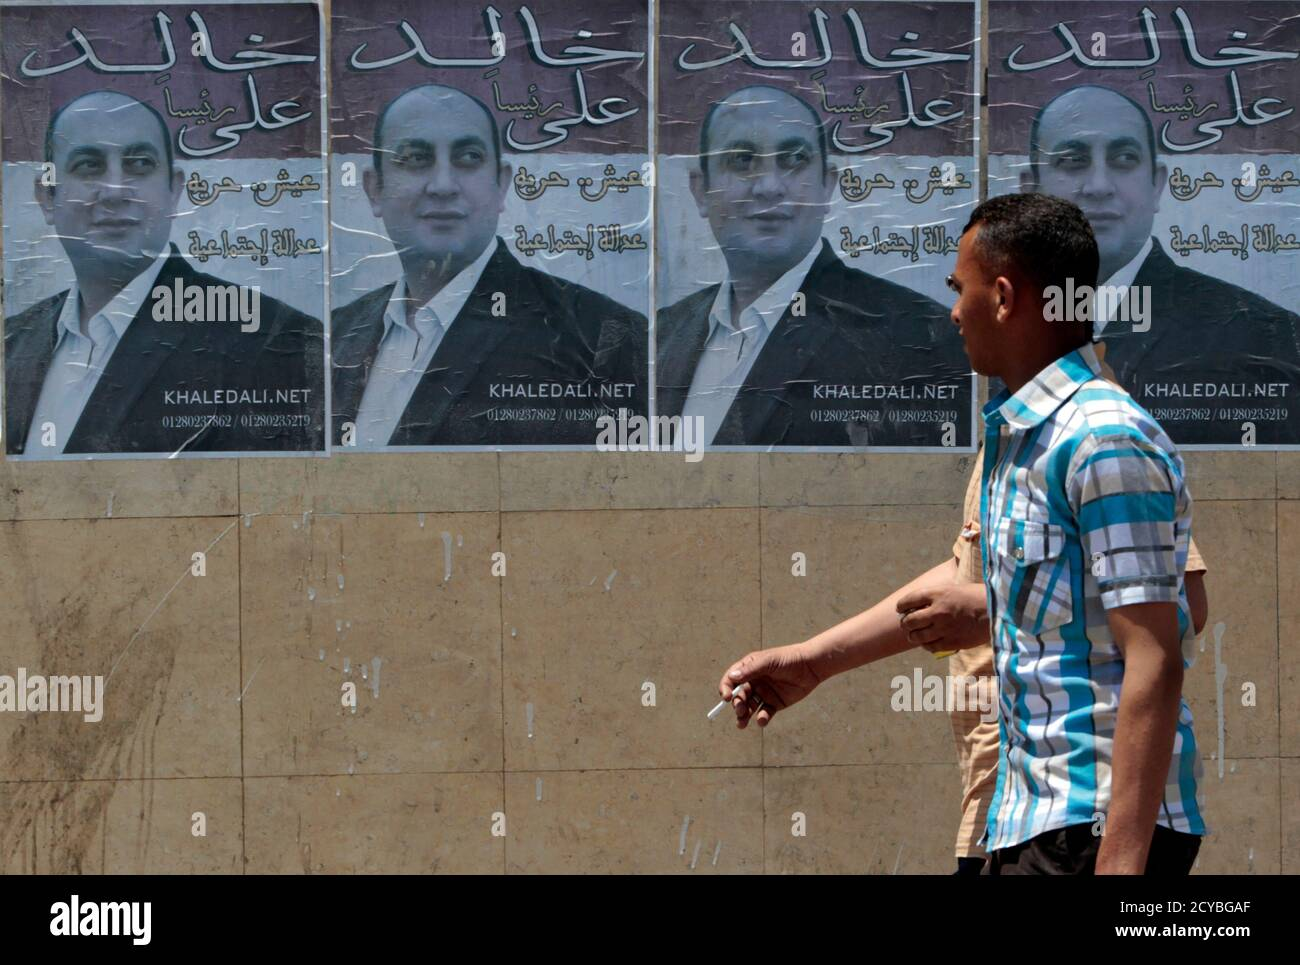 Men walk past campaign posters of presidential candidate and lawyer and rights activist Khaled Ali in Cairo May 7, 2012. Voting starts on May 23-24 in the election to choose a new president after Hosni Mubarak was turfed out of office last year. REUTERS/Amr Abdallah Dalsh  (EGYPT - Tags: POLITICS ELECTIONS) Stock Photo